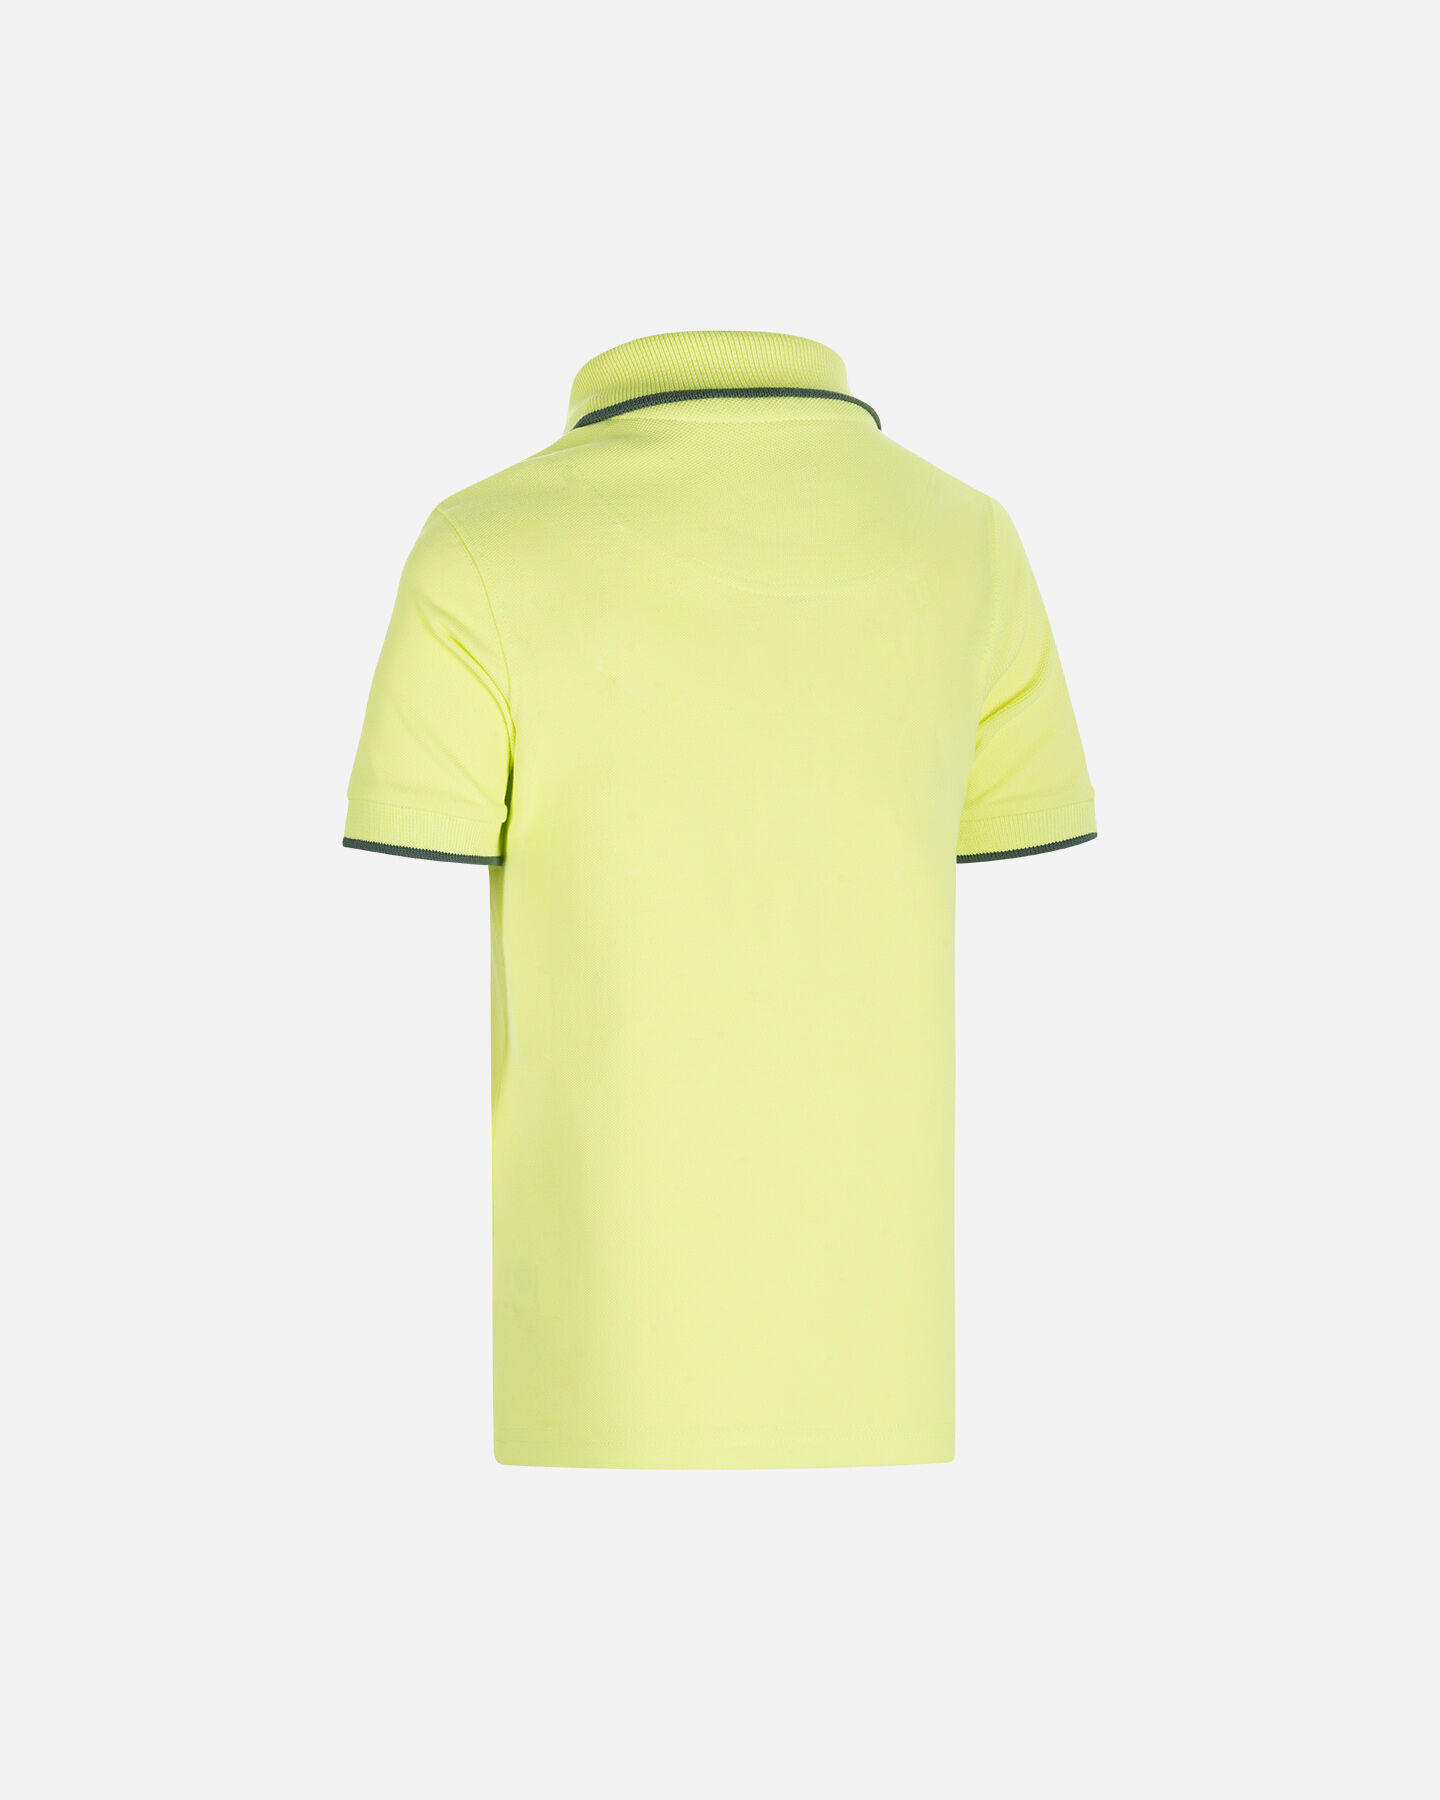 Polo TIMBERLAND PIQUET JR S4088885 scatto 1